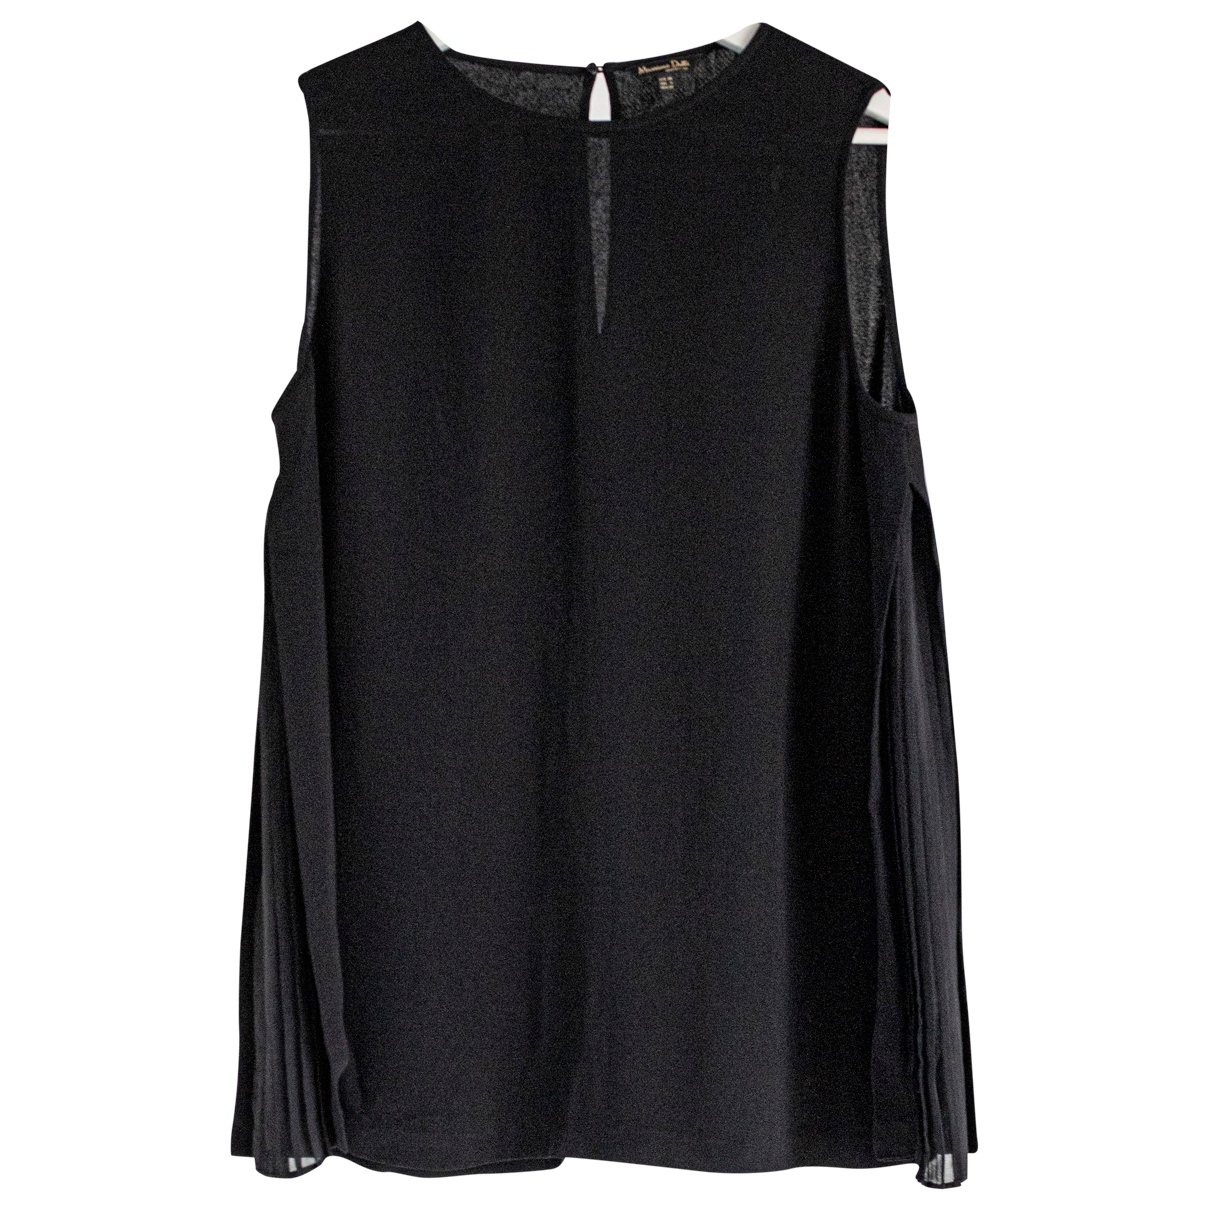 Massimo Dutti \N Black  top for Women 6 US